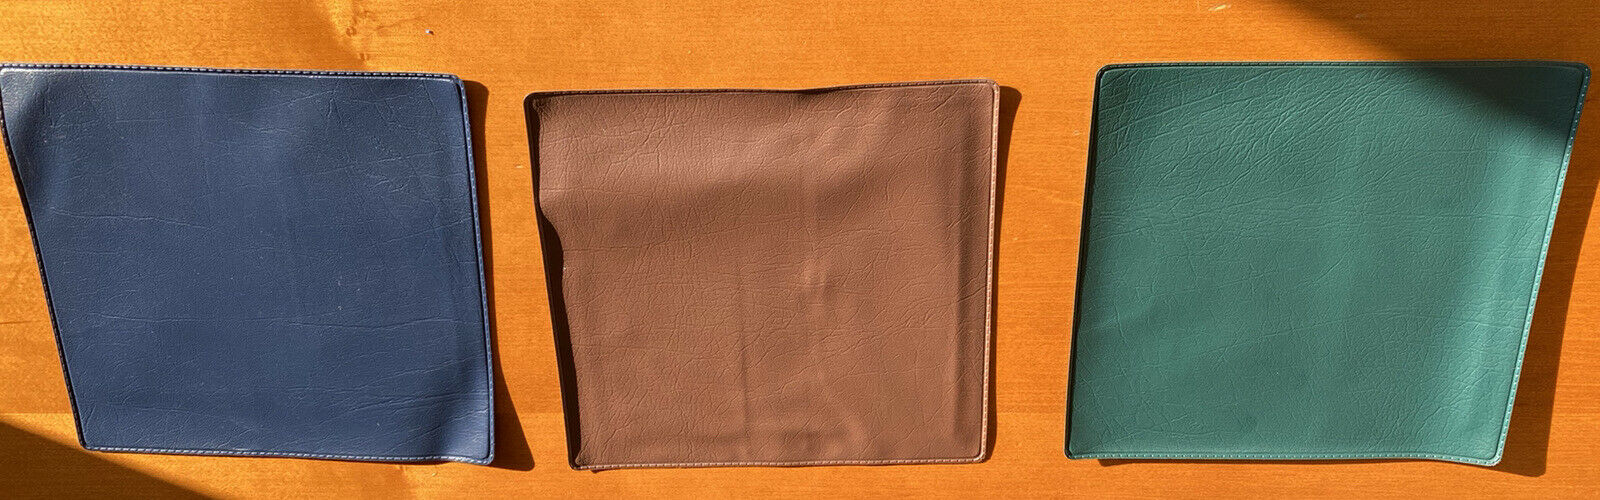 1 Blue or Brown or Green VINYL Checkbook Cover Duplicate Flap ebayID mouthyMo